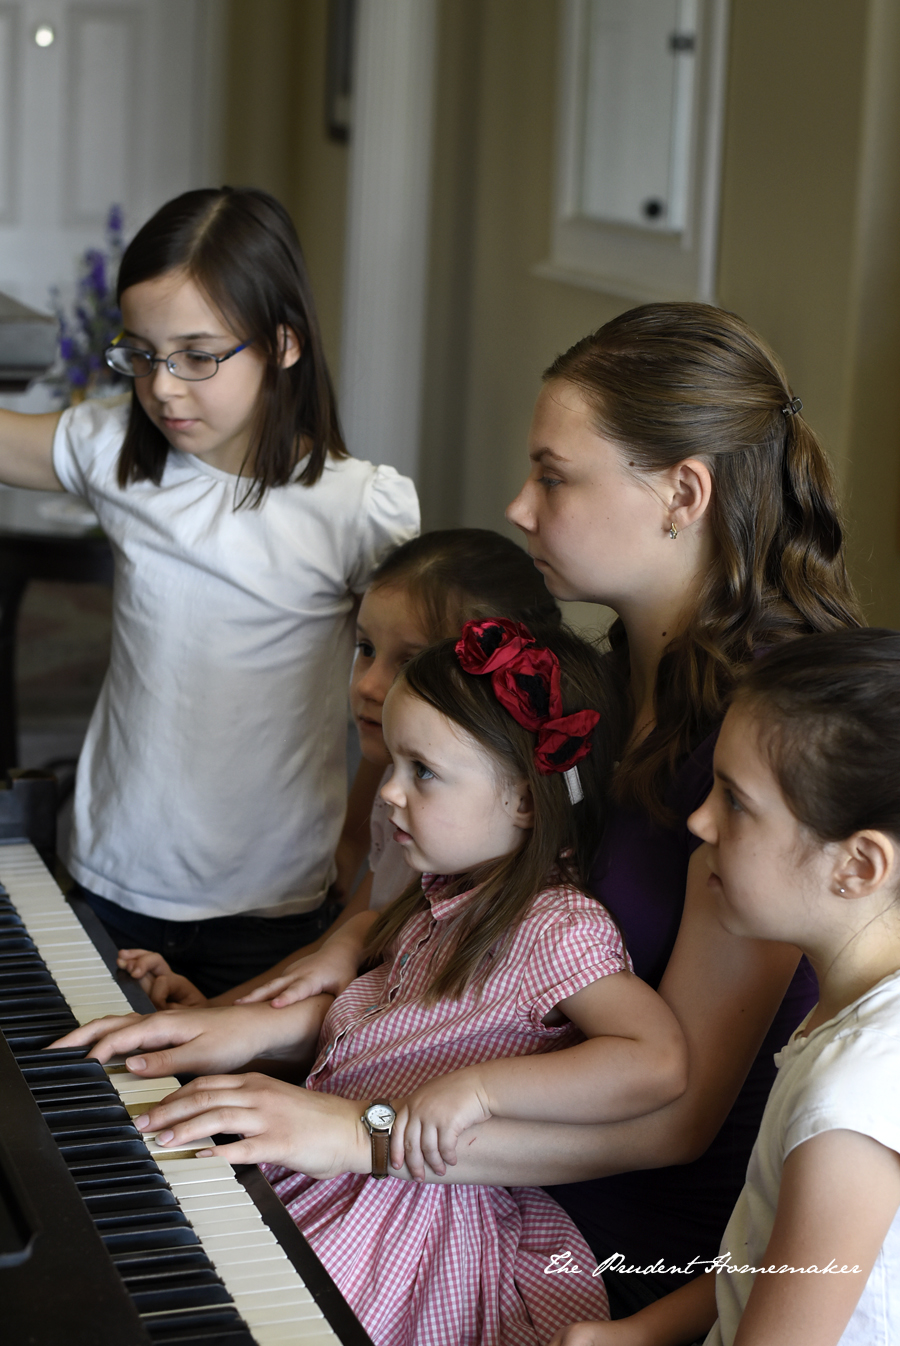 Girls at the Piano The Prudent Homemaker